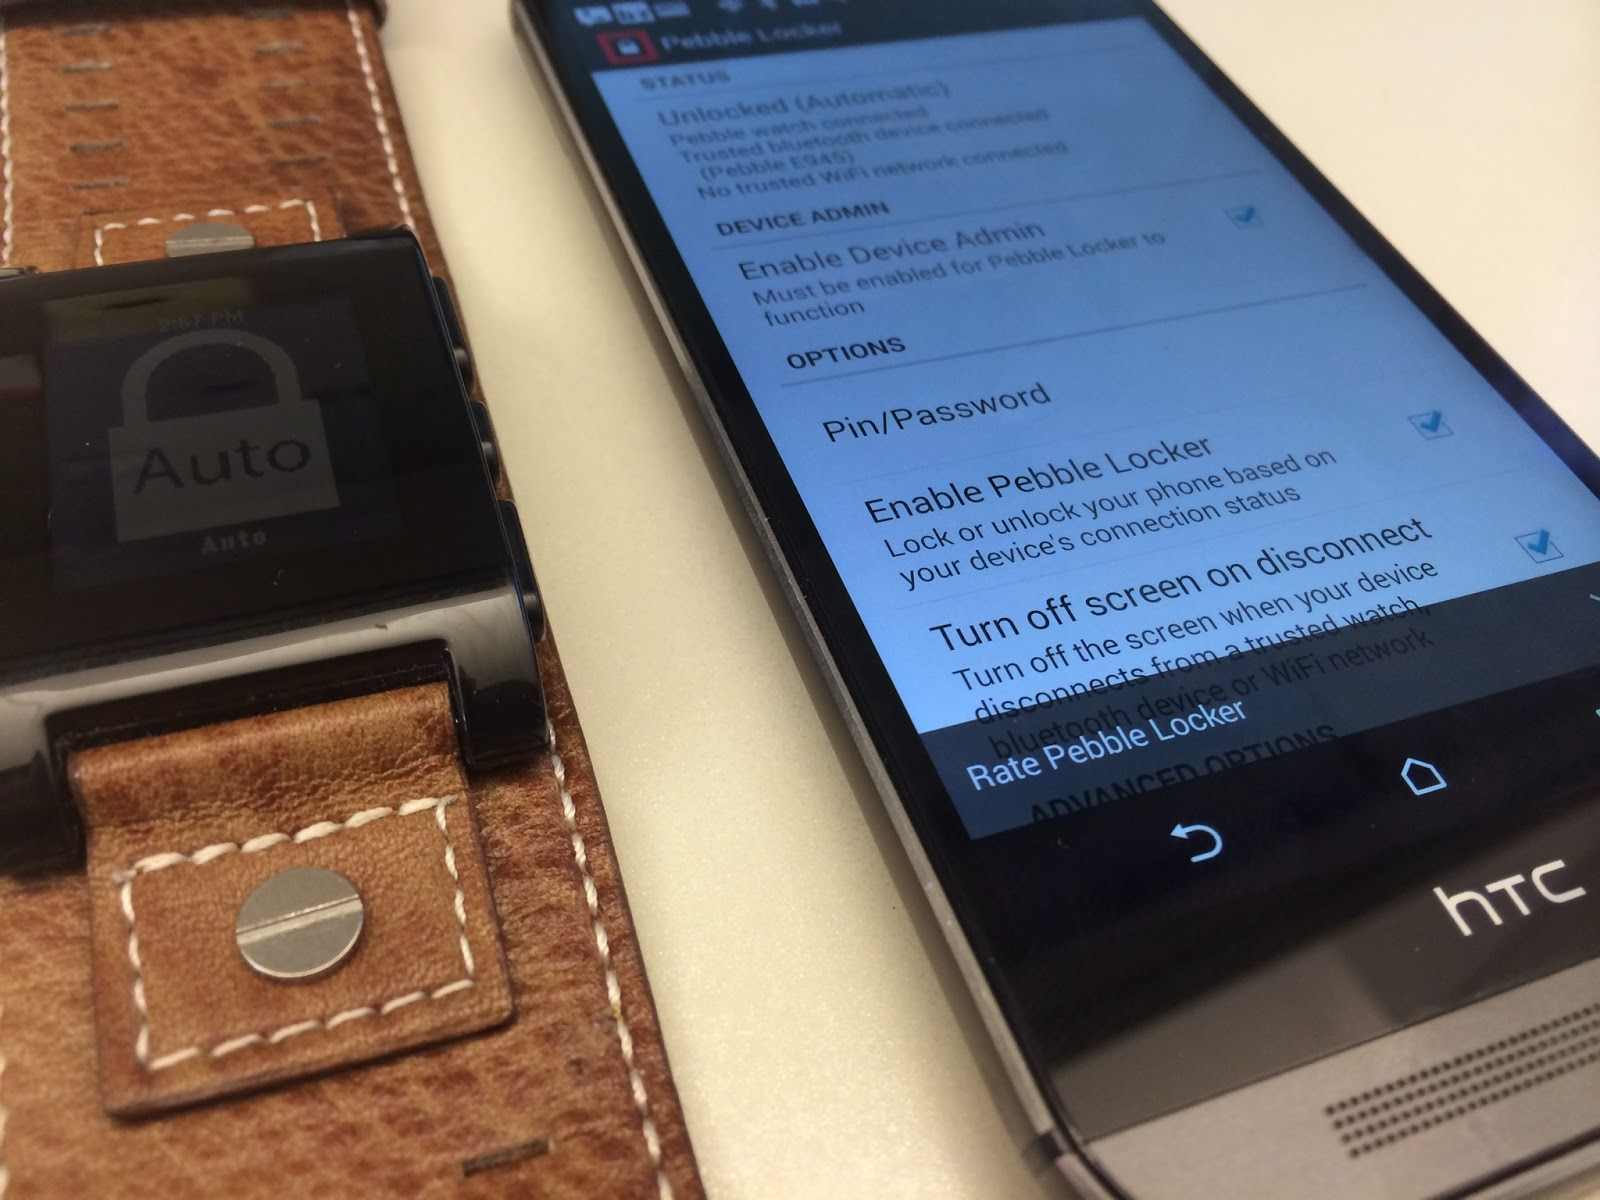 How to Unlock Your Android Phone From Your Pebble | Geek5auce